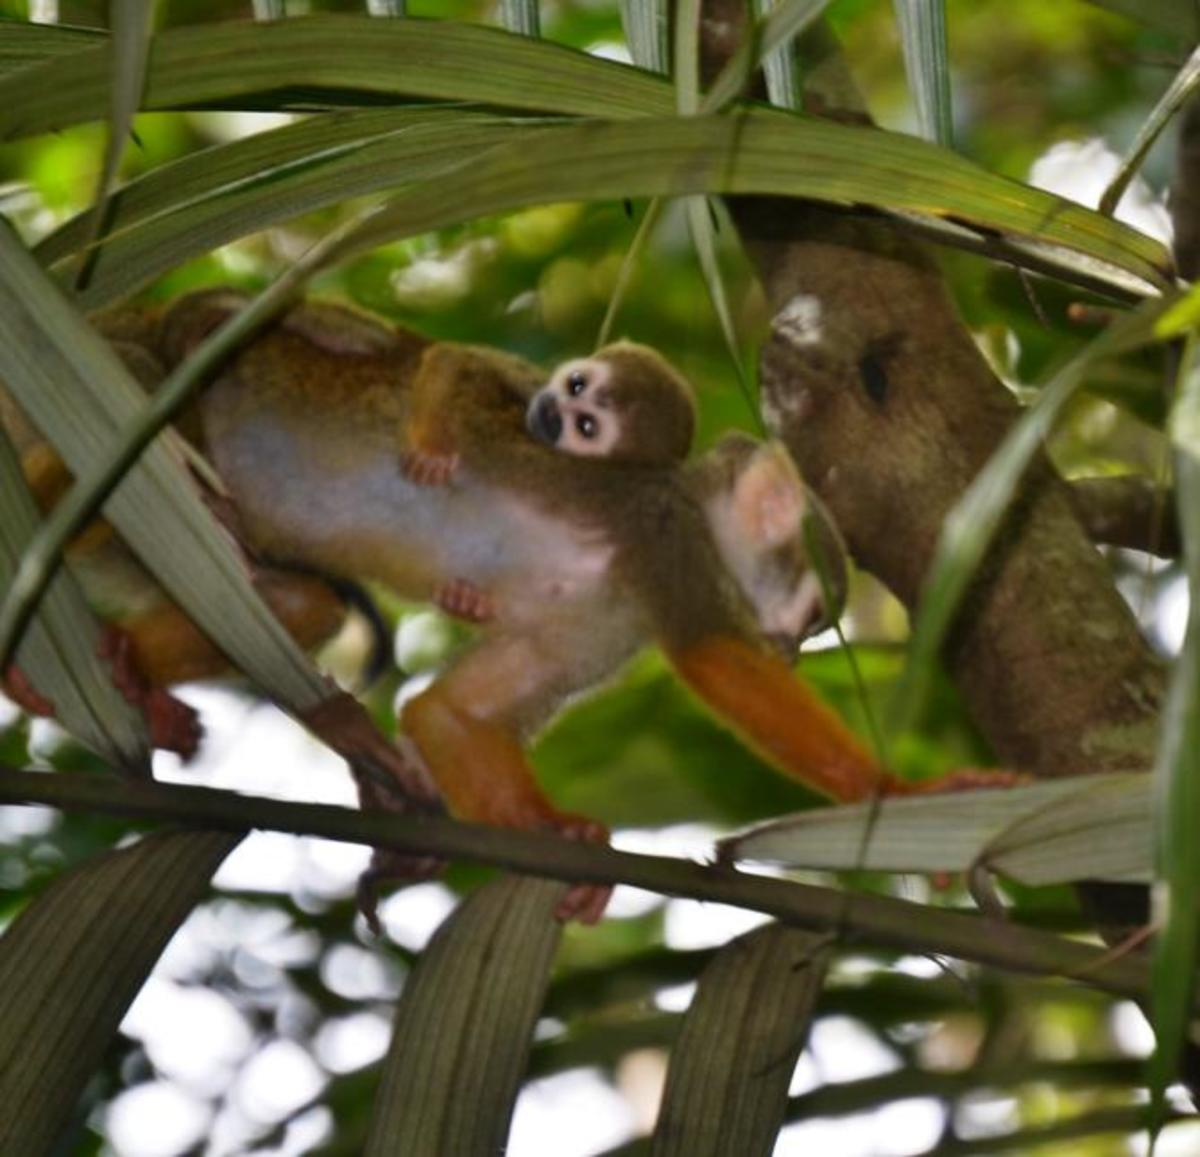 An adult squirrel monkey traveling with a baby. (Photo: Anita Stone)